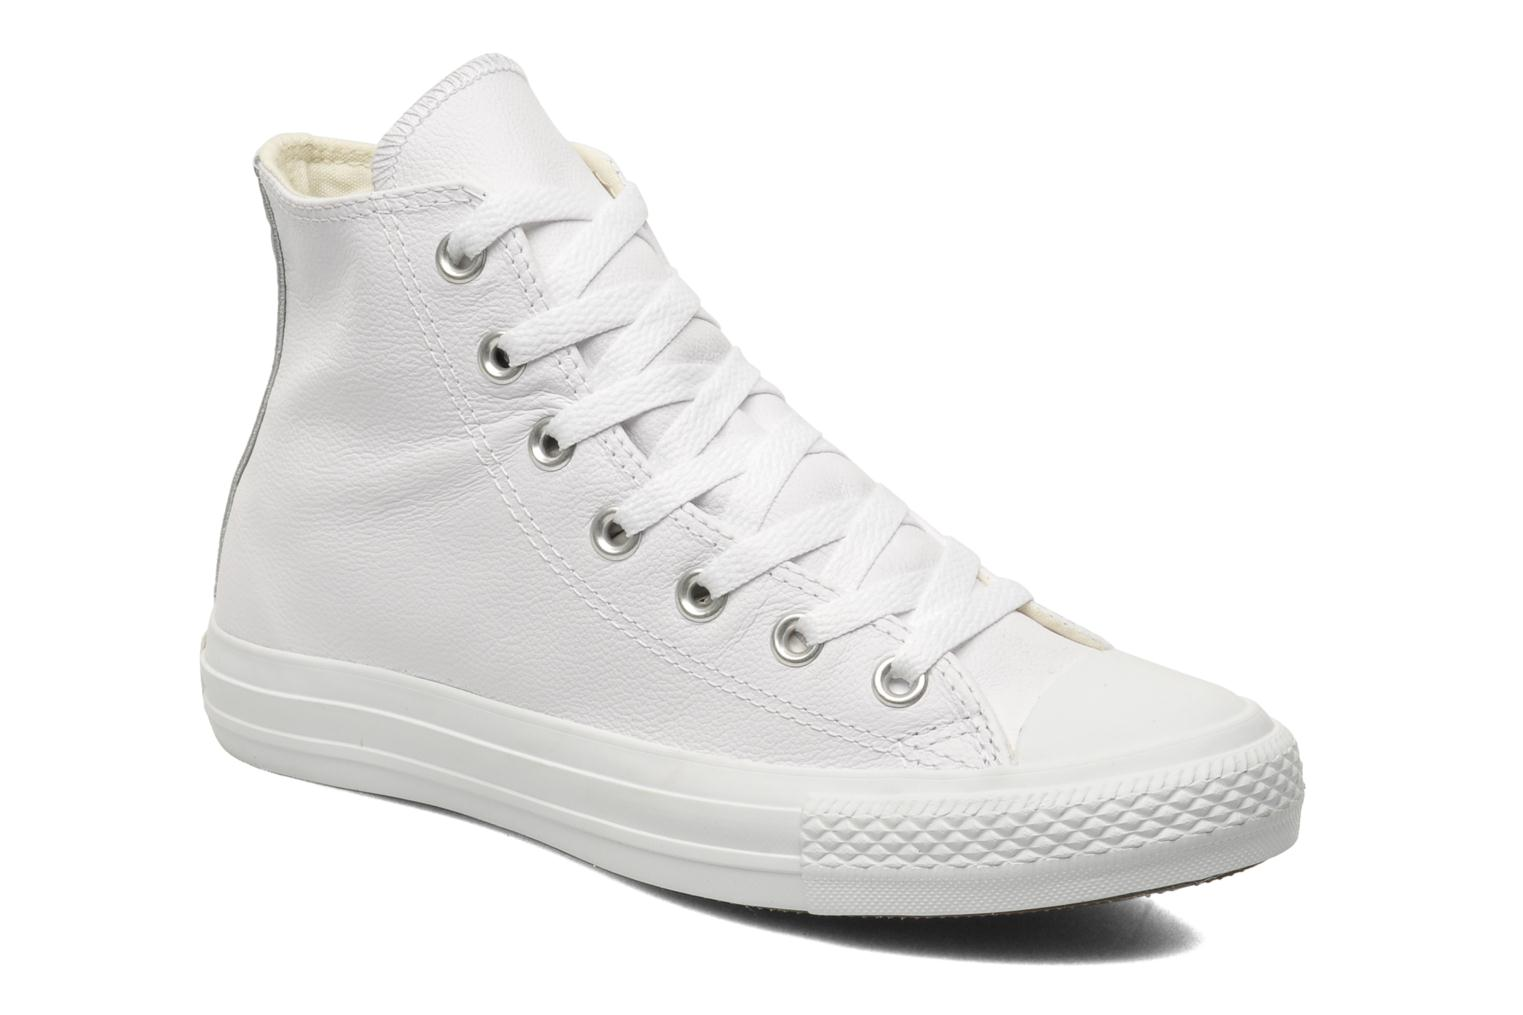 converse-all stars hoog-dames-wit-1T406-witte-sneakers-dames